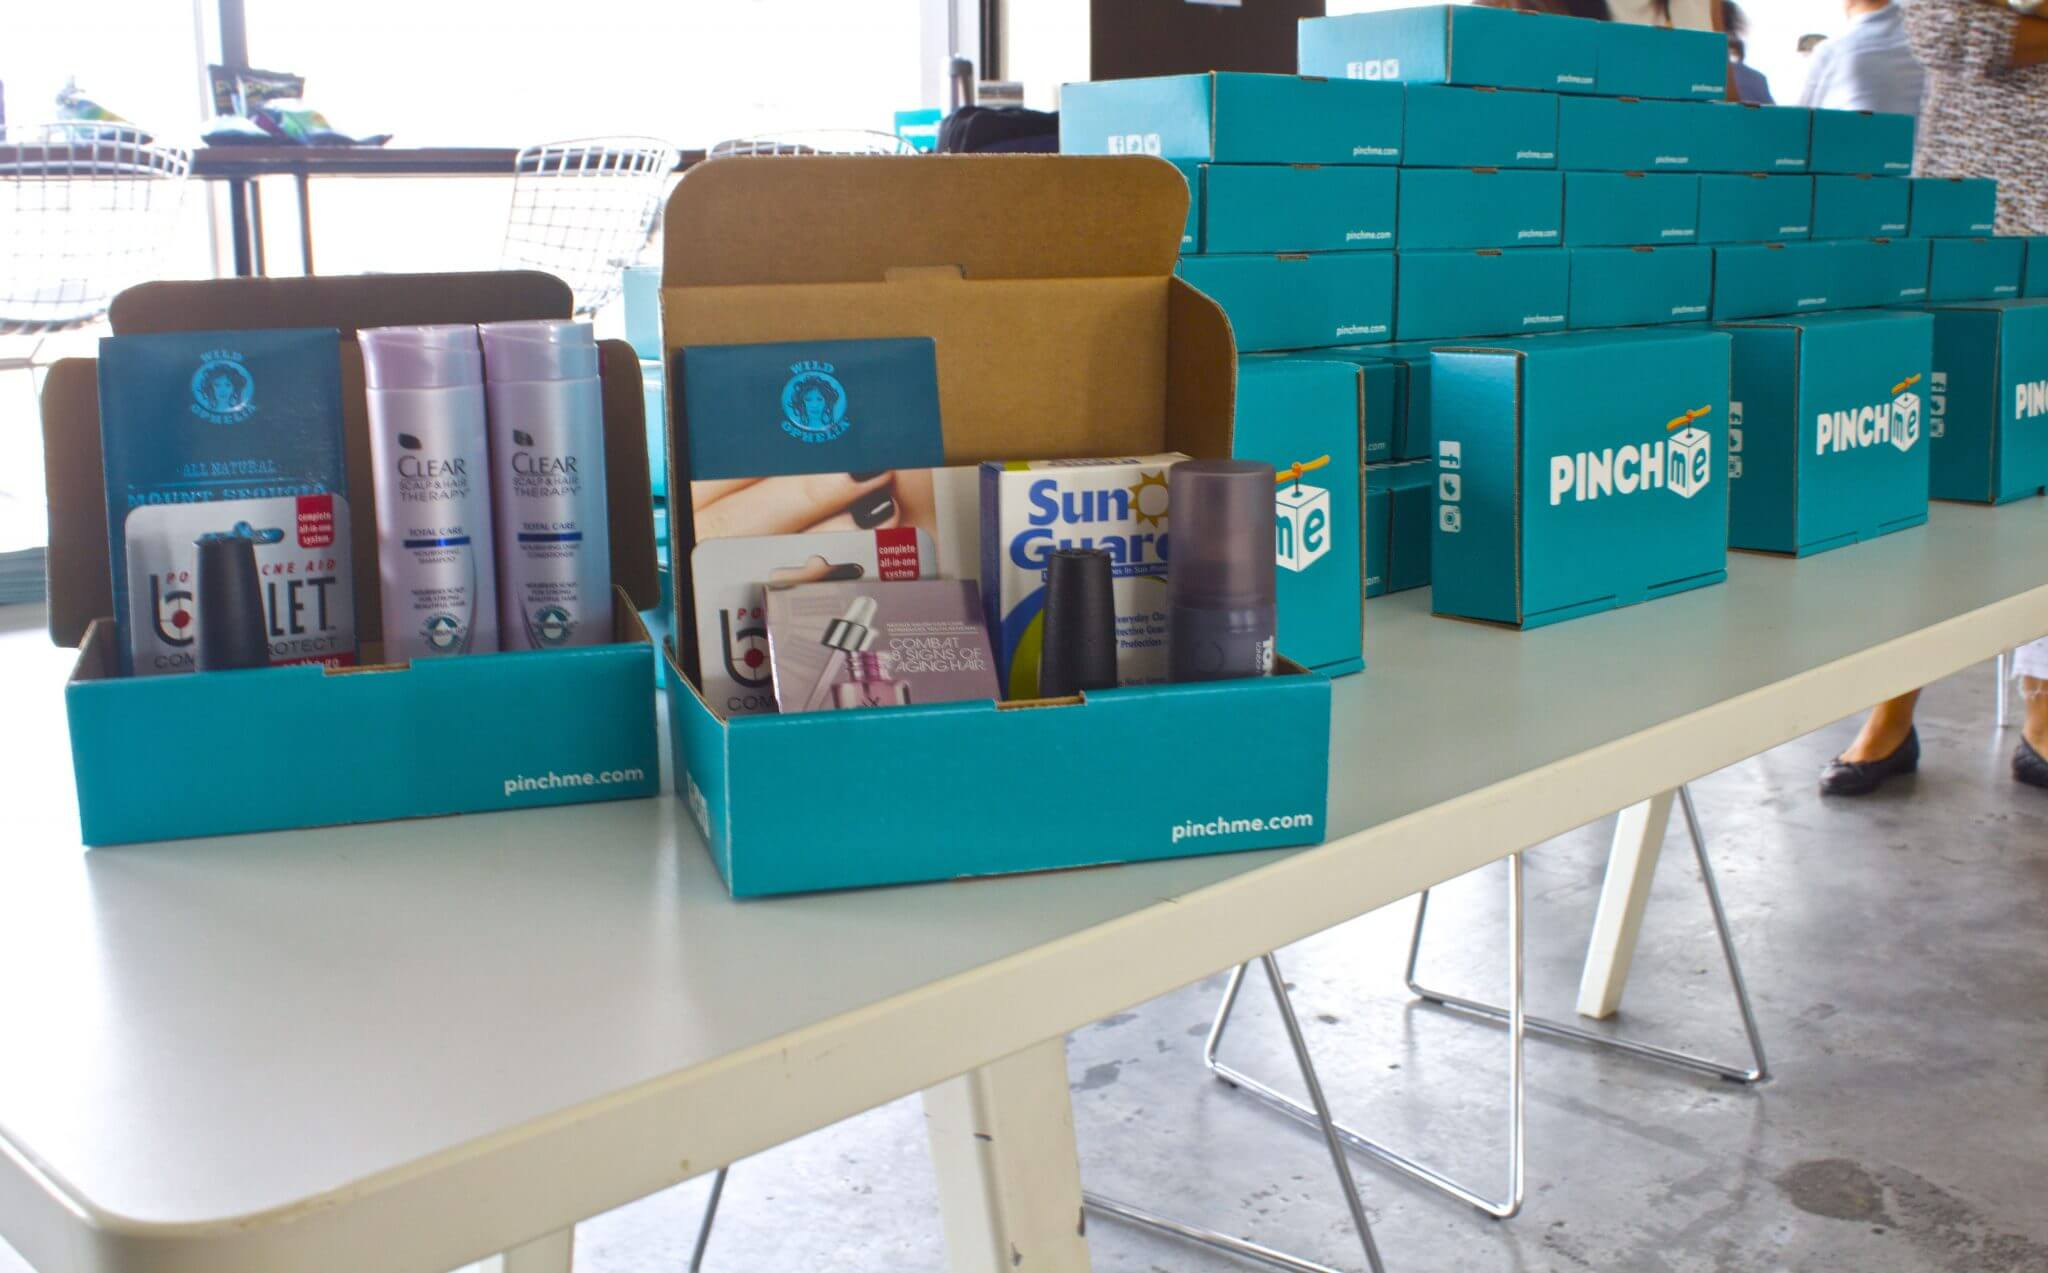 FREE Samples Box From PINCHme